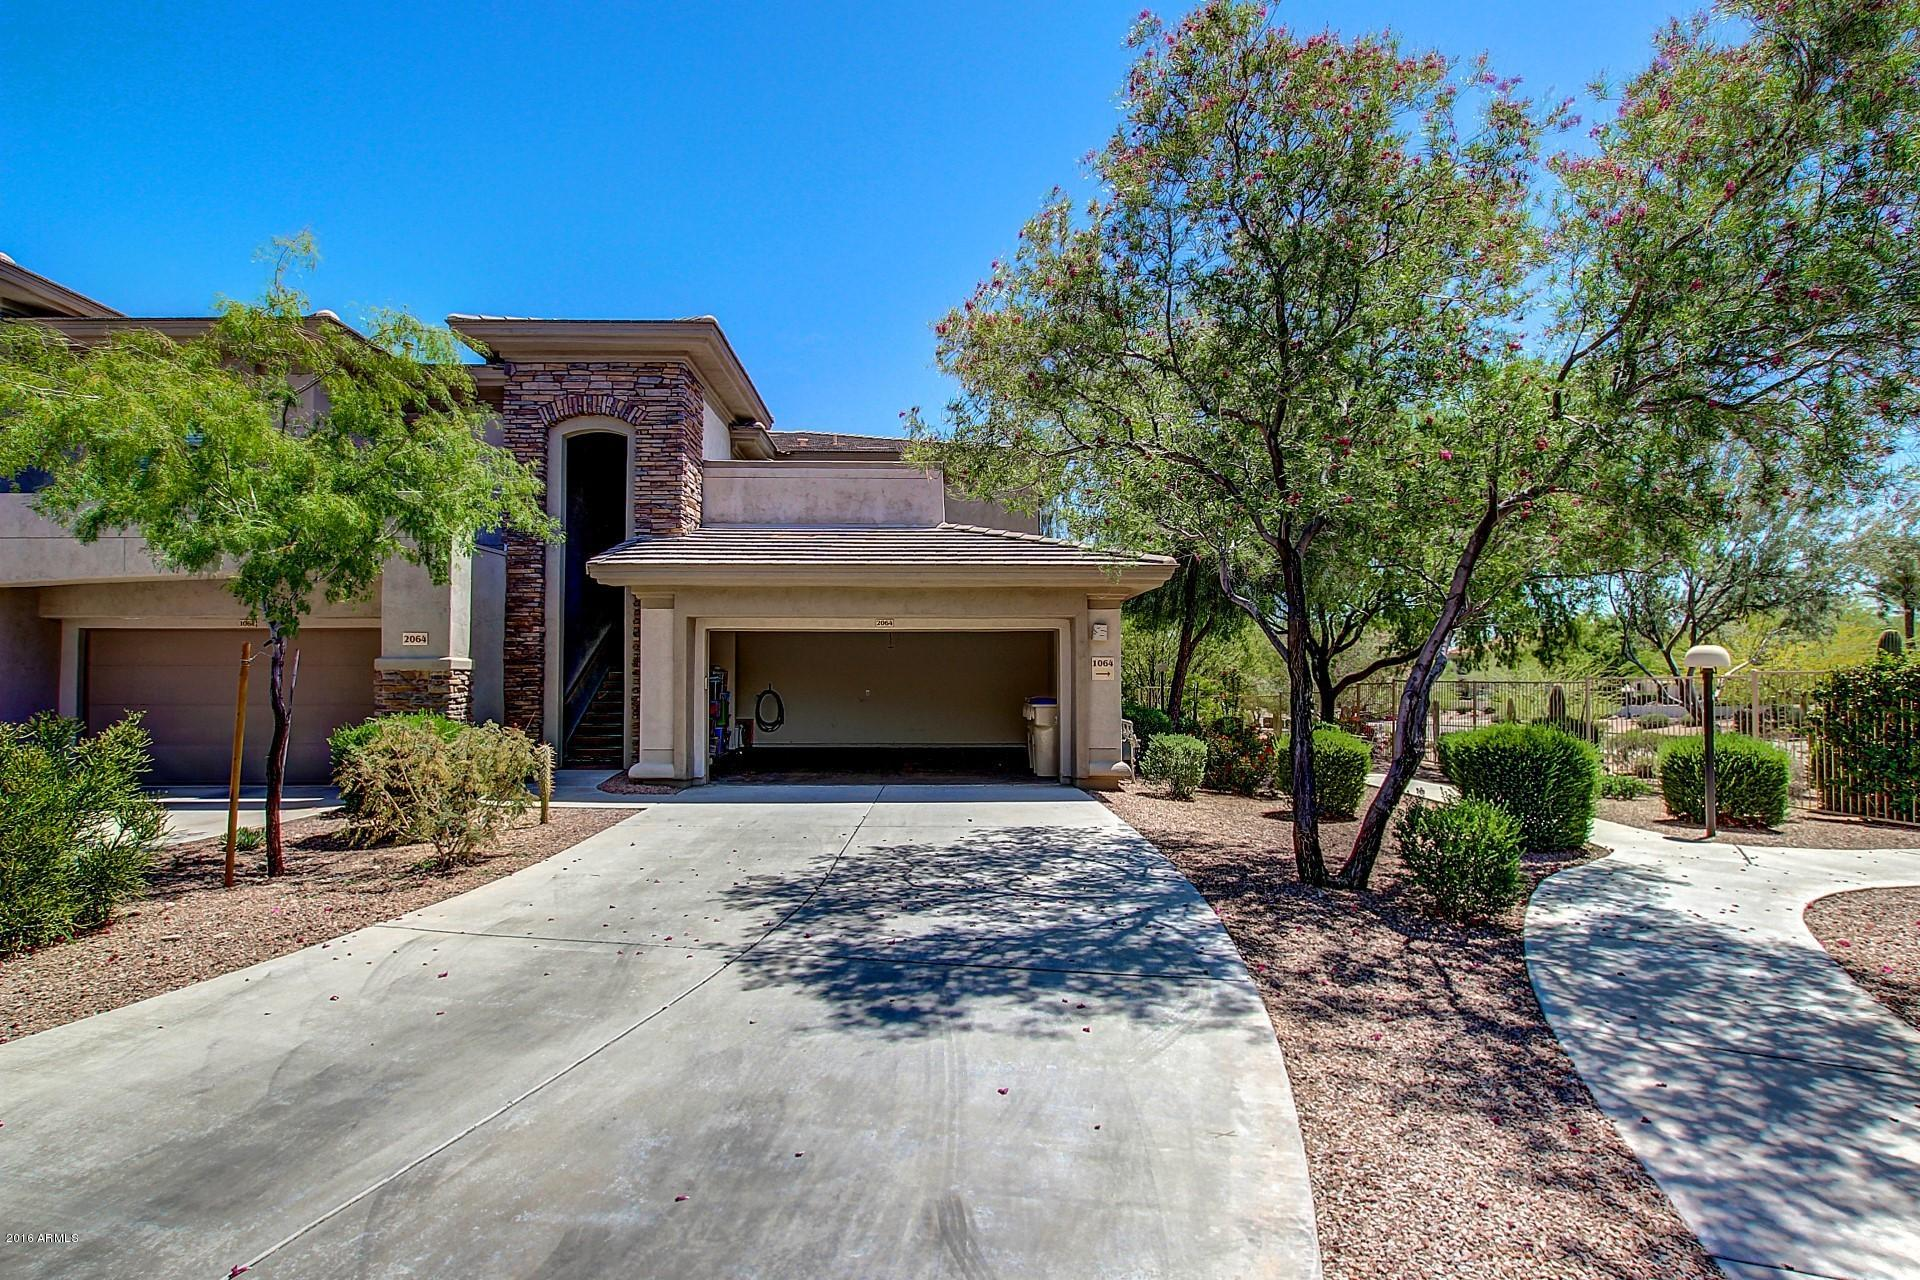 16800 E El Lago Boulevard, Unit 2064, Fountain Hills AZ 85268